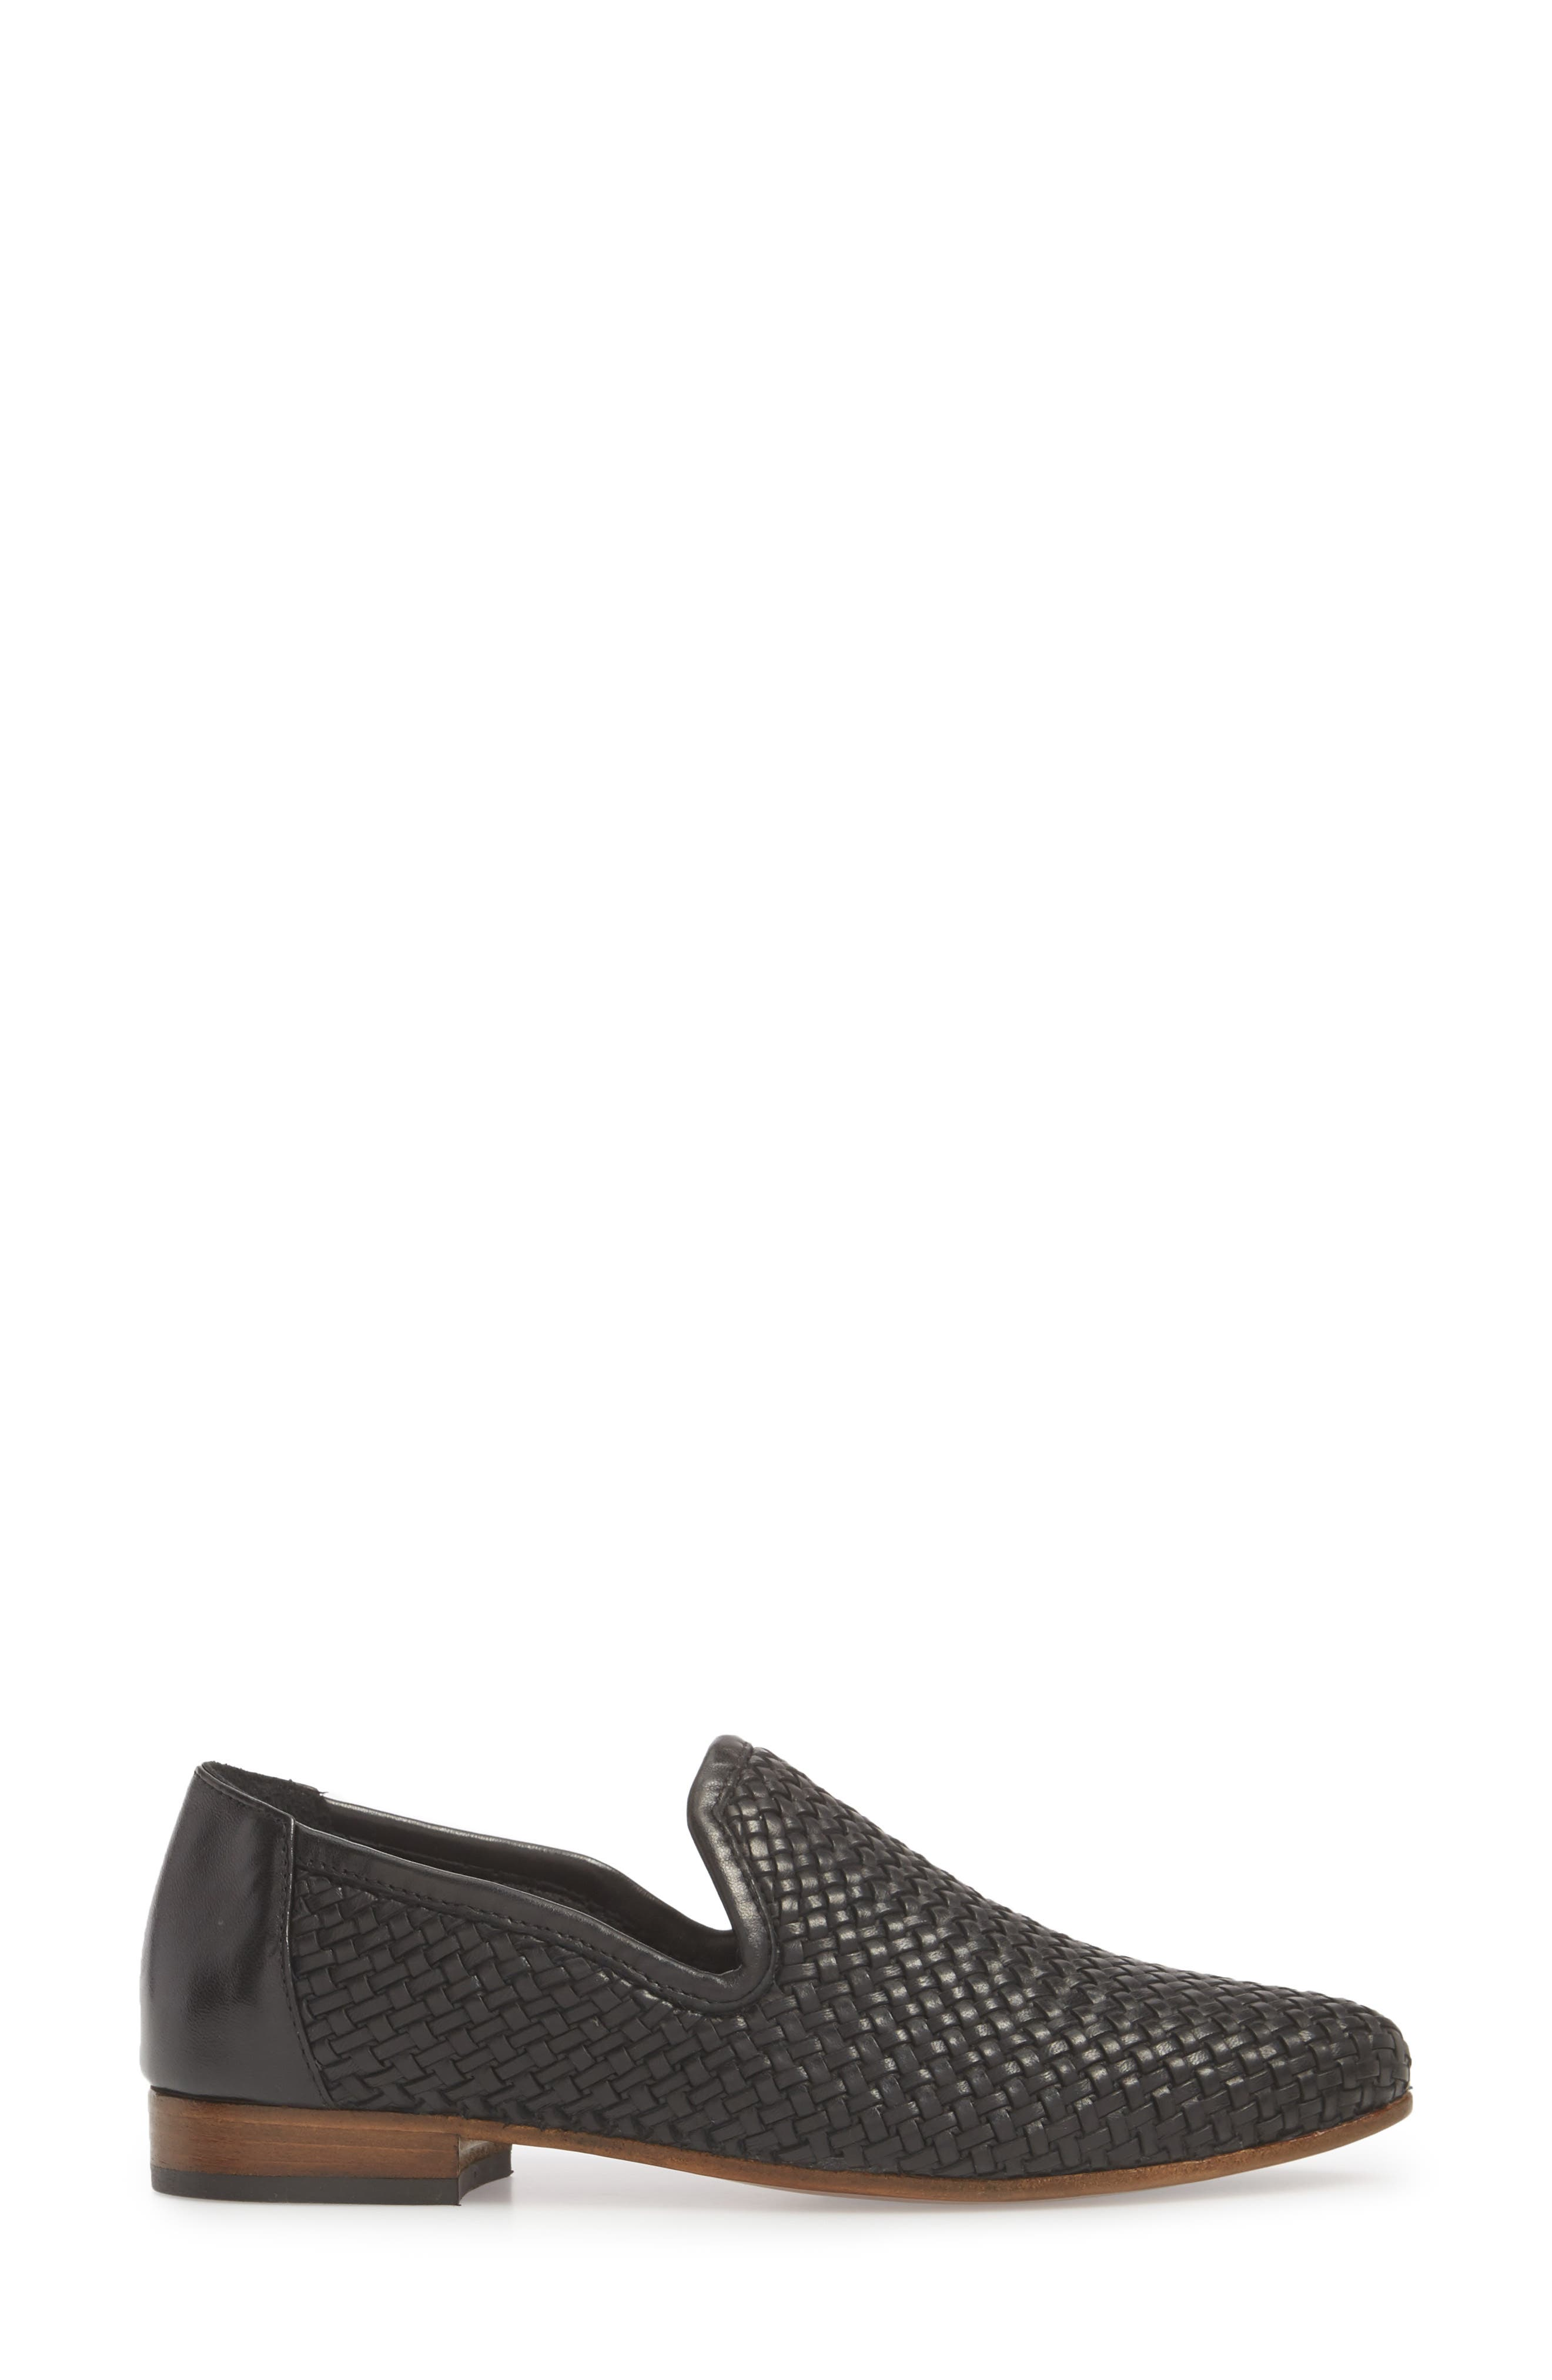 Yara Woven Slip-On Loafer,                             Alternate thumbnail 6, color,                             Onyx Leather